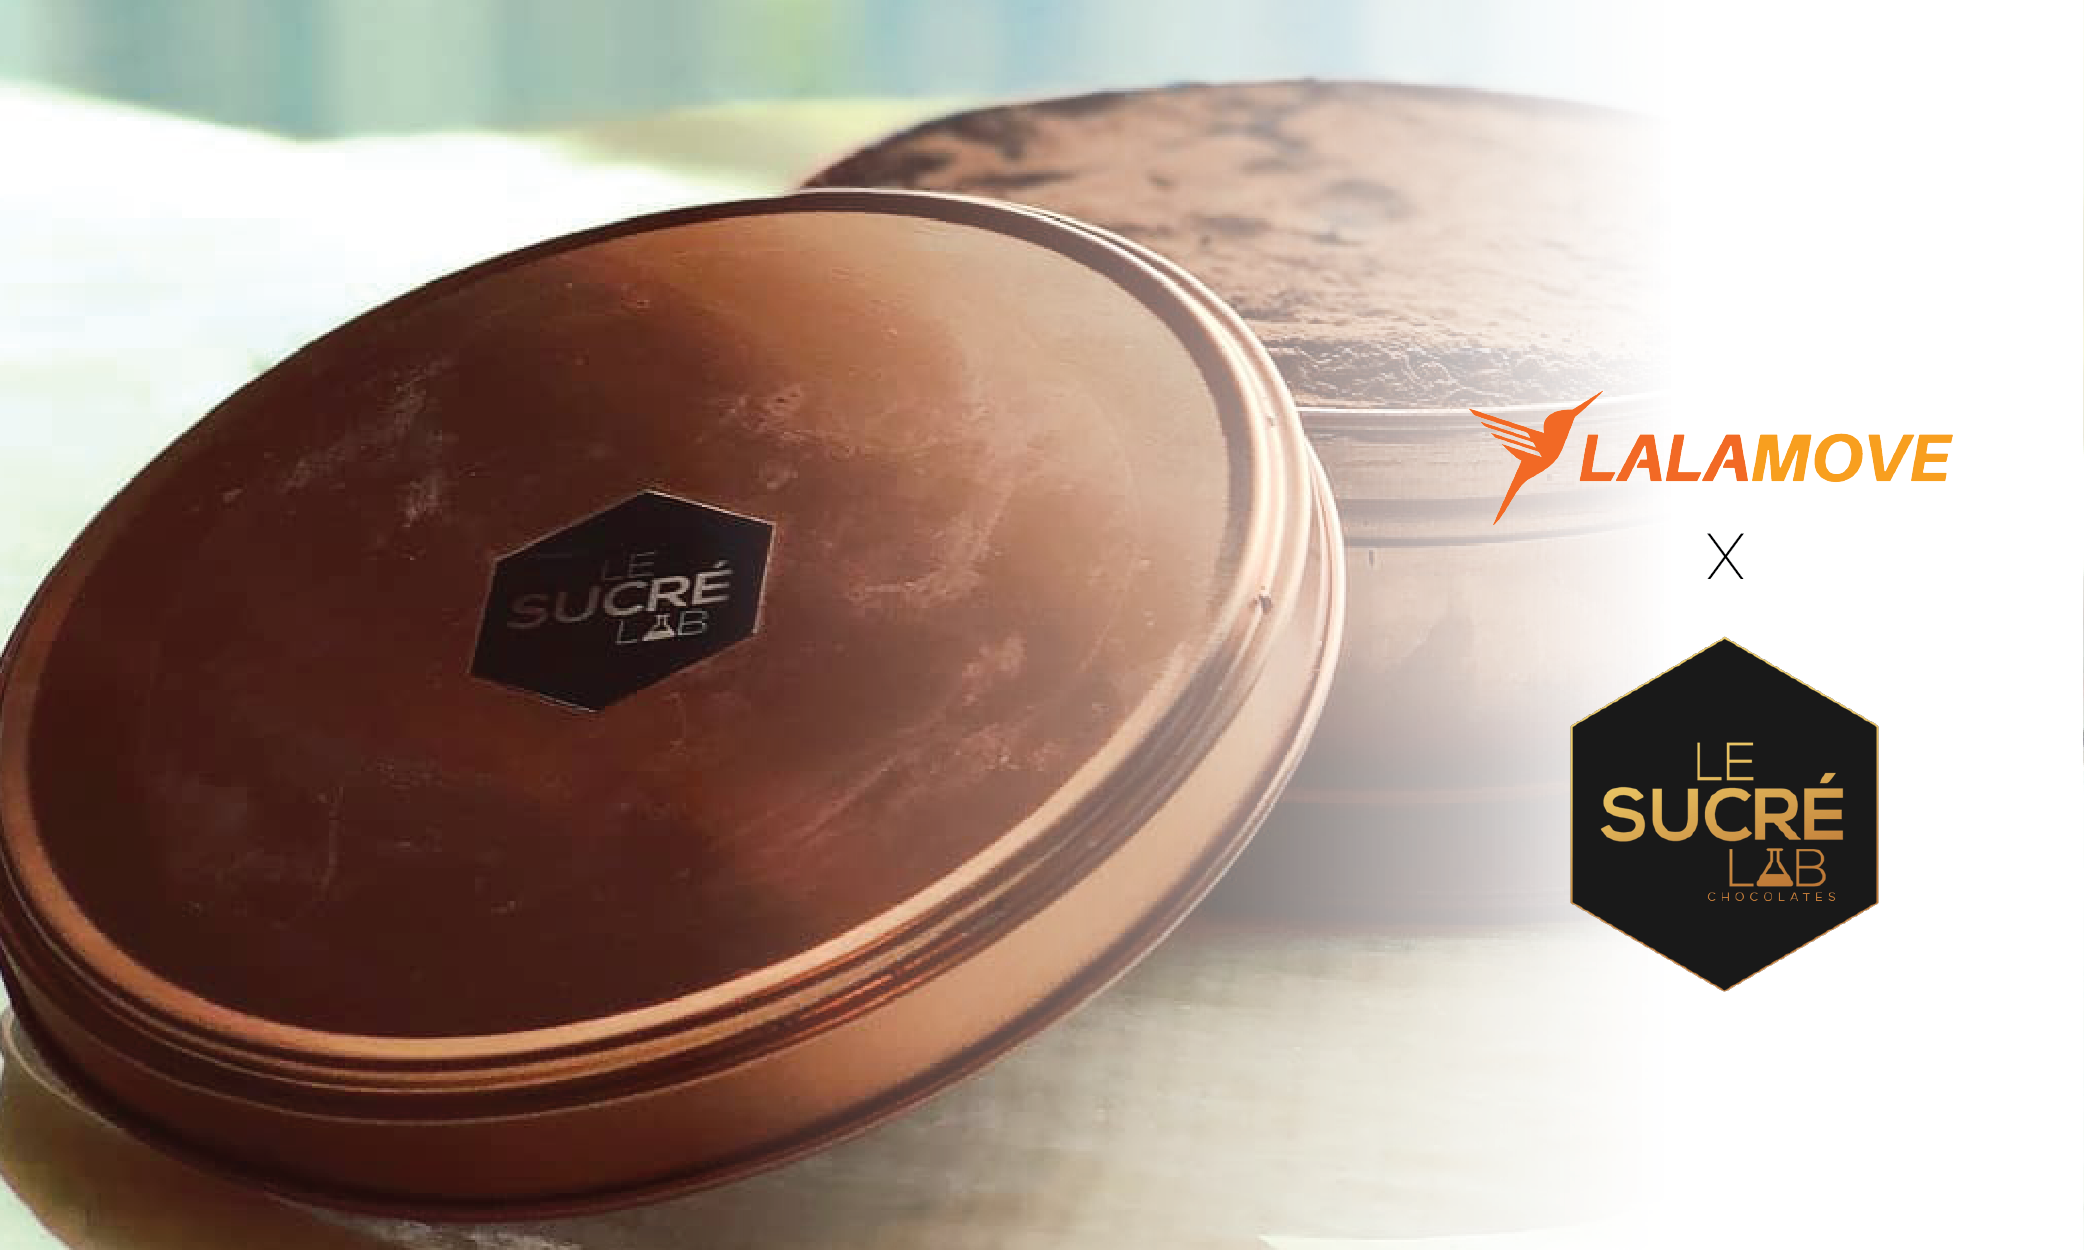 Le Sucré Lab hits the sweet spot of their dessert business with Lalamove